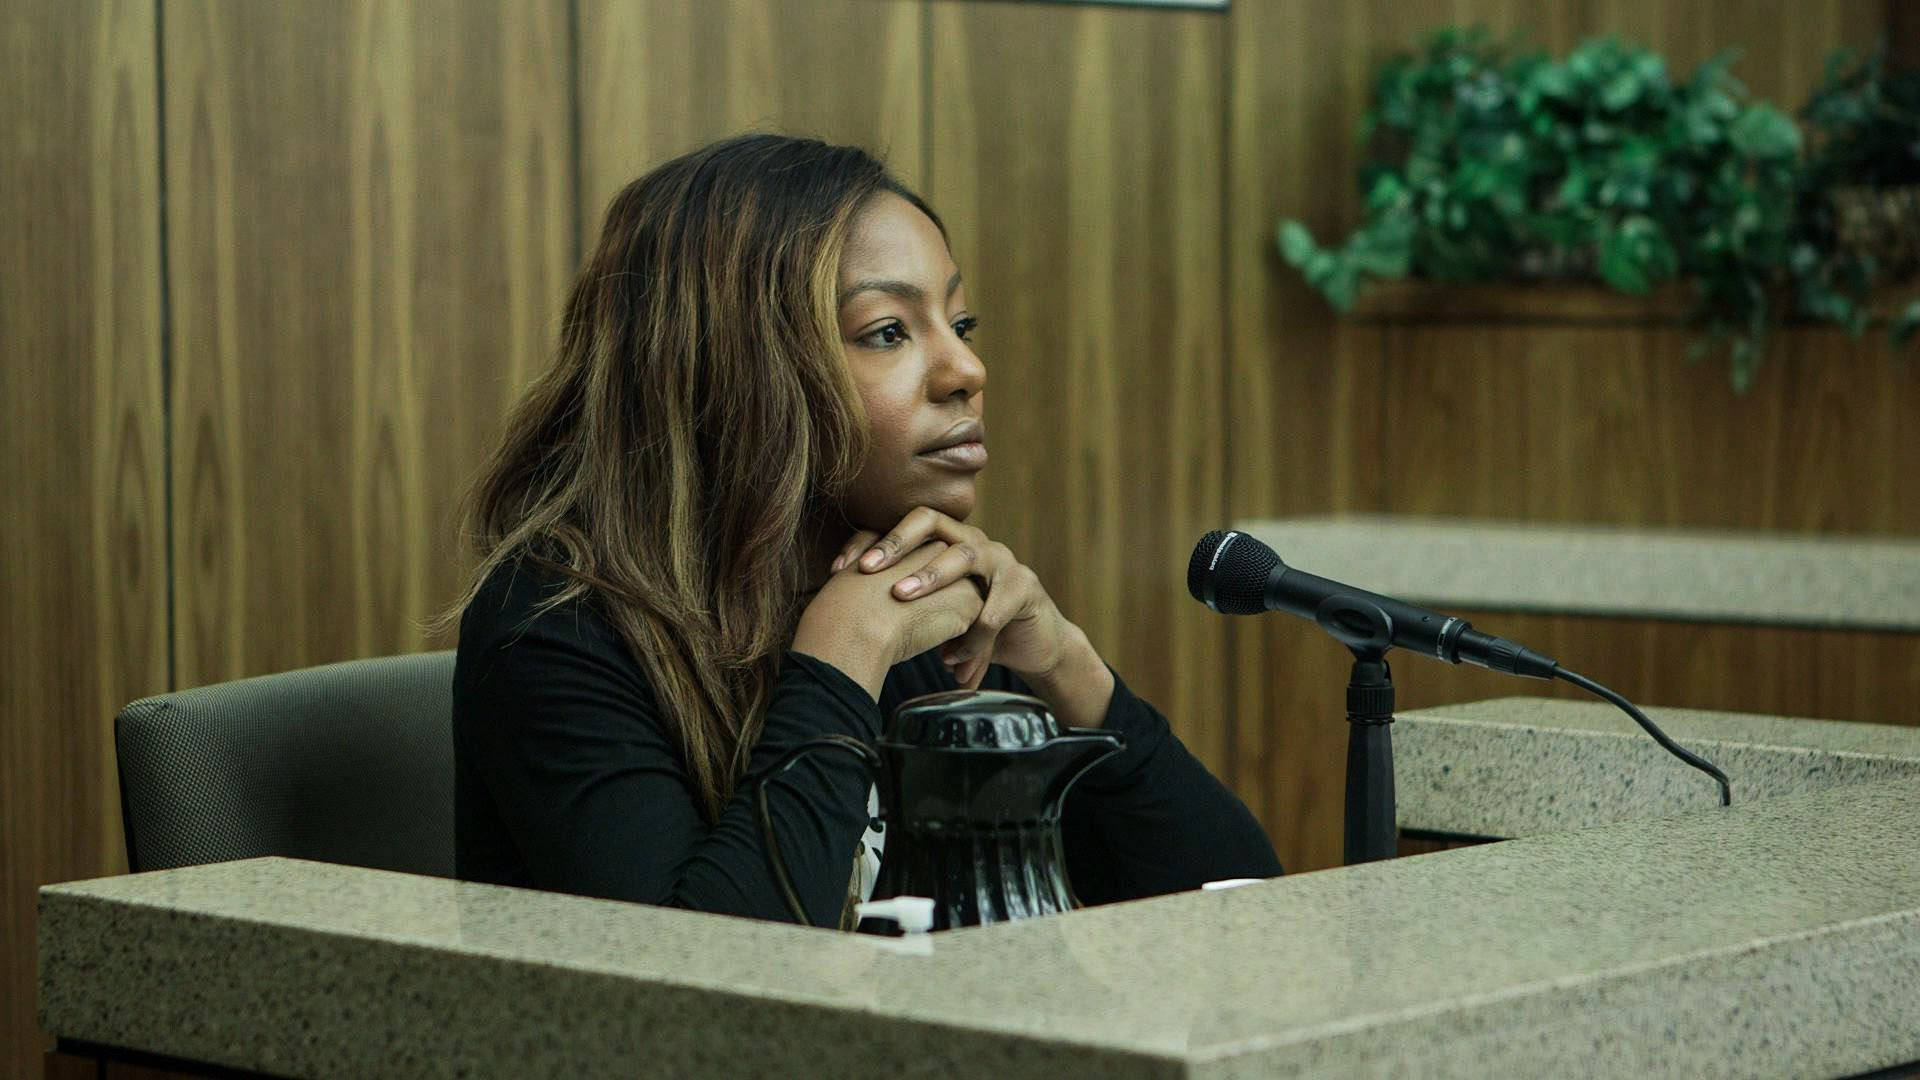 Charlo Greene We talked with the news anchor who quit on live TV to fight for legal pot